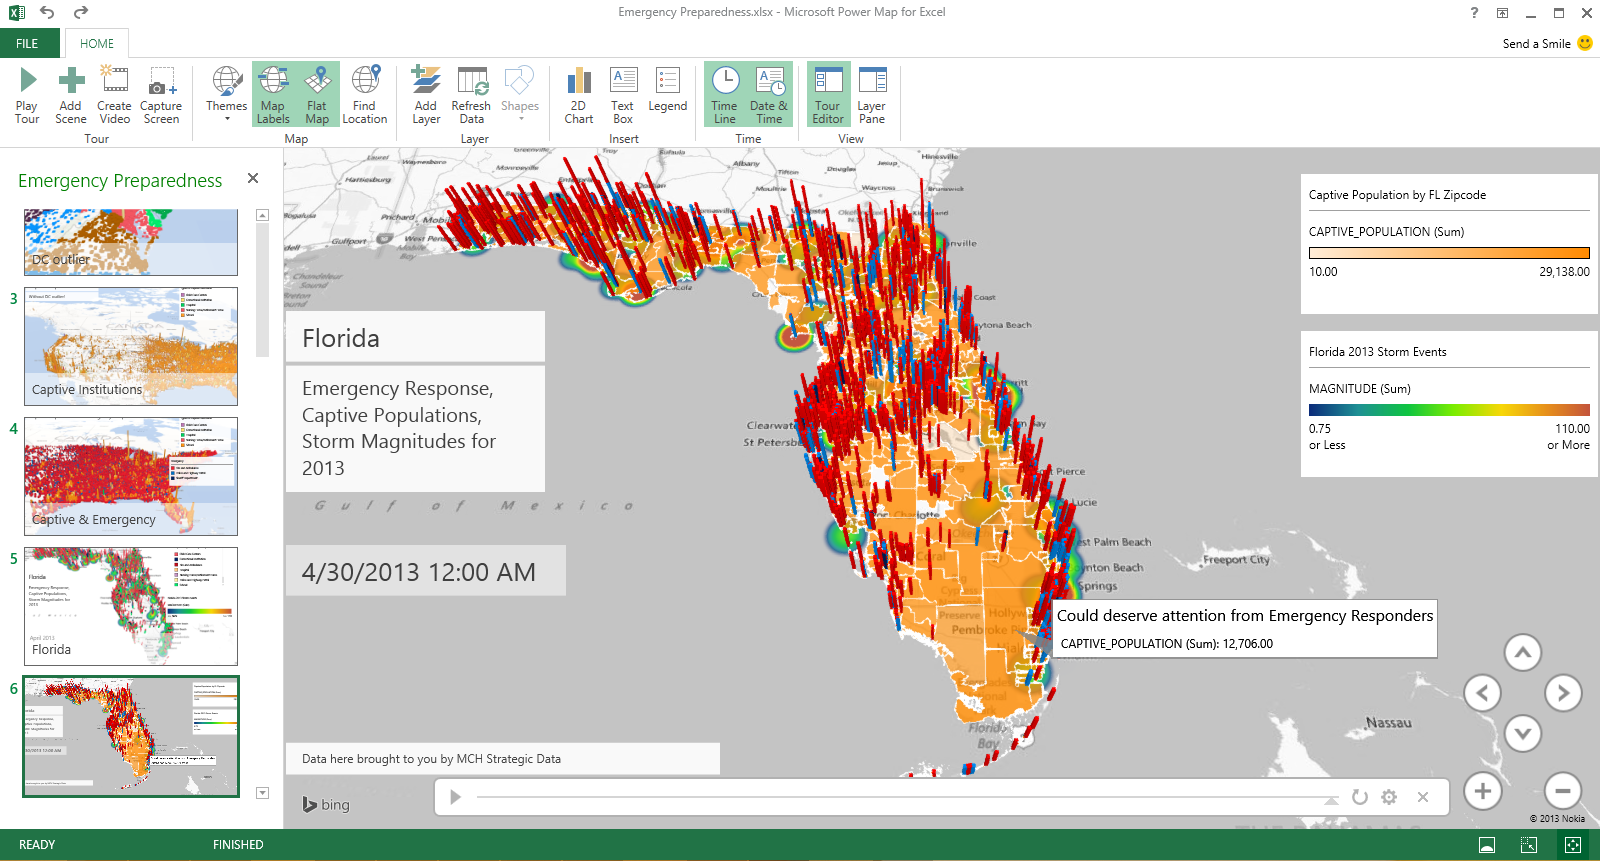 Ediblewildsus  Winning Power Map For Excel Now Generally Available Automatically Updated  With Lovable Power Map For Excel Now Generally Available Automatically Updated For Office  With Agreeable Excel Insert Multiple Rows Also Gillette Sensor Excel Razor In Addition How To Insert Checkbox In Excel  And How To Put Exponents In Excel As Well As Excel Vba Find Additionally How To Merge Two Columns In Excel From Powerbimicrosoftcom With Ediblewildsus  Lovable Power Map For Excel Now Generally Available Automatically Updated  With Agreeable Power Map For Excel Now Generally Available Automatically Updated For Office  And Winning Excel Insert Multiple Rows Also Gillette Sensor Excel Razor In Addition How To Insert Checkbox In Excel  From Powerbimicrosoftcom